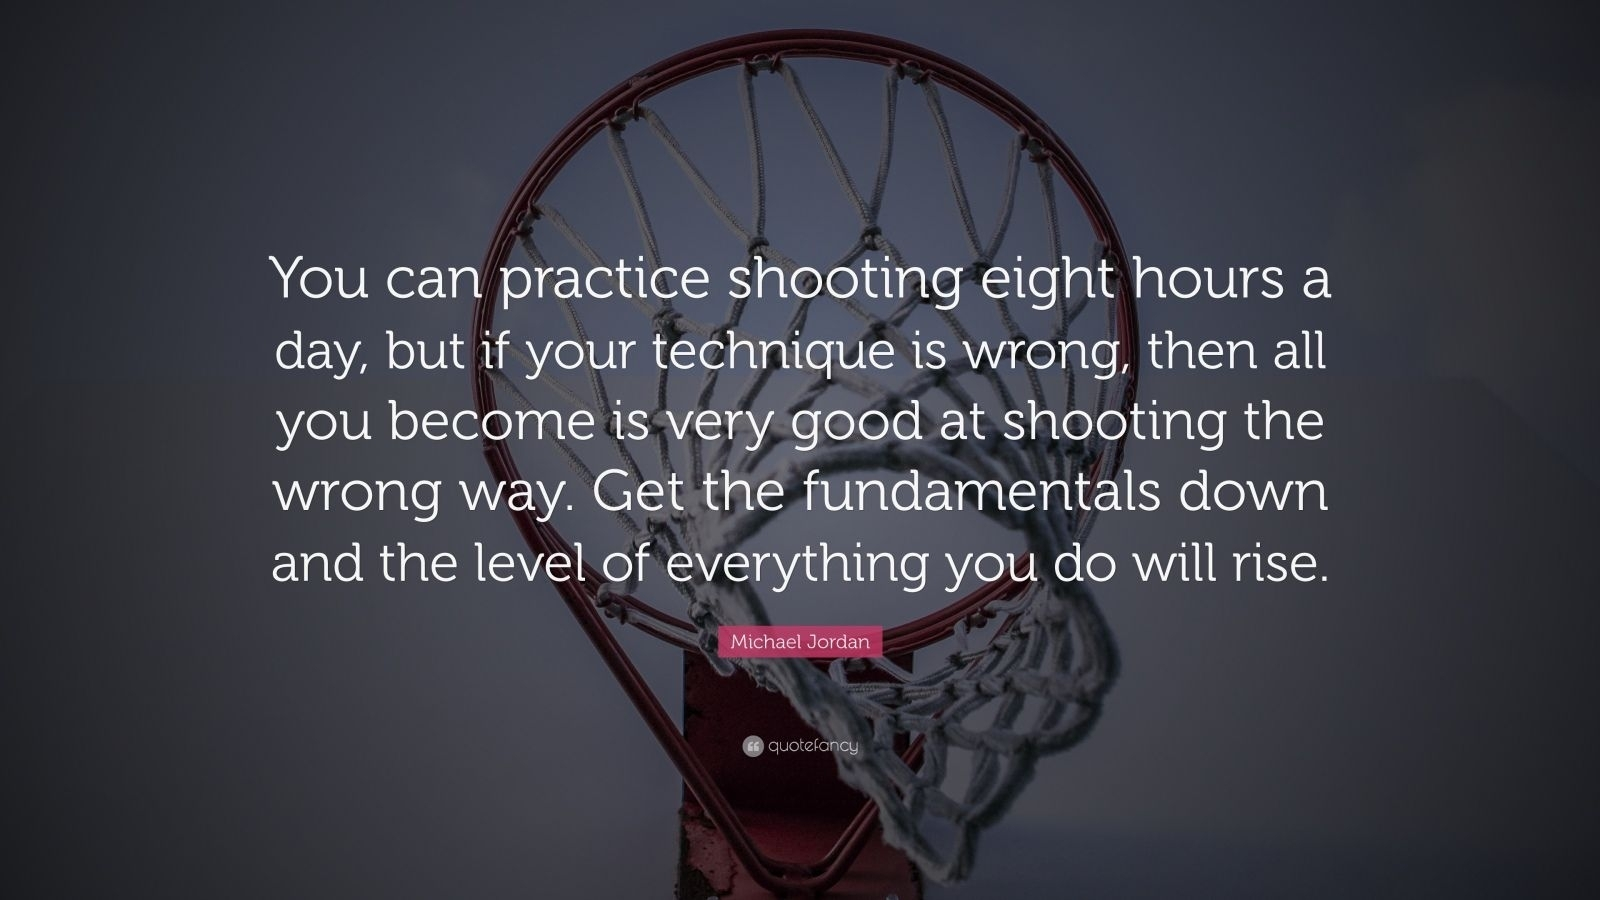 michael jordan quotes (100 wallpapers) - quotefancy